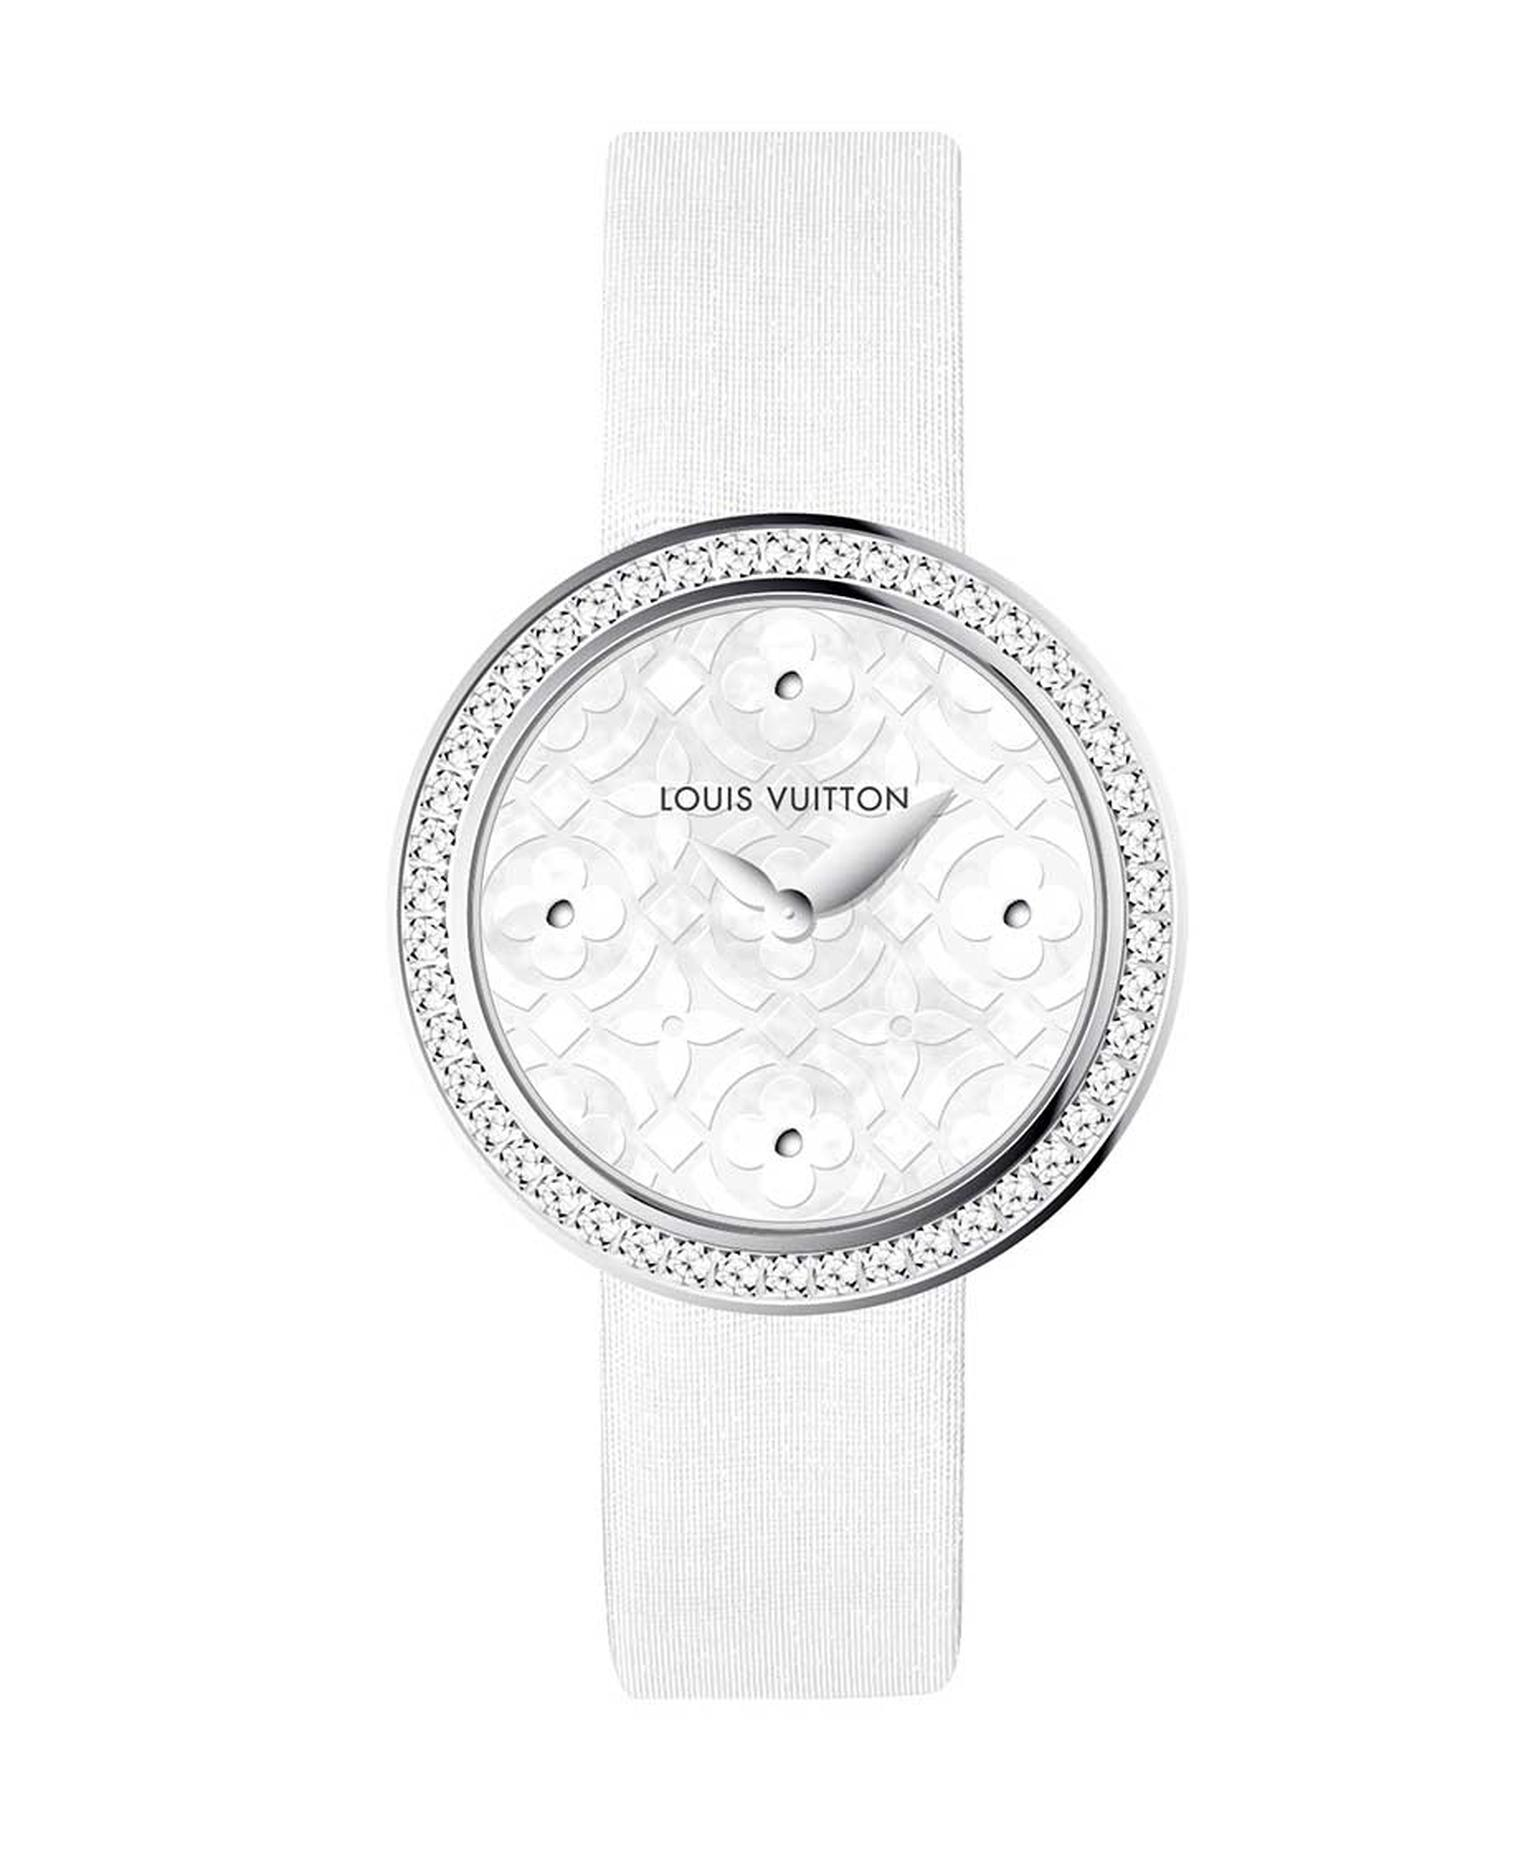 New for 2014 is the Louis Vuitton Dentelle de Monogram watch with a pearly white mother-of-pearl dial, diamond-set bezel and white satin strap